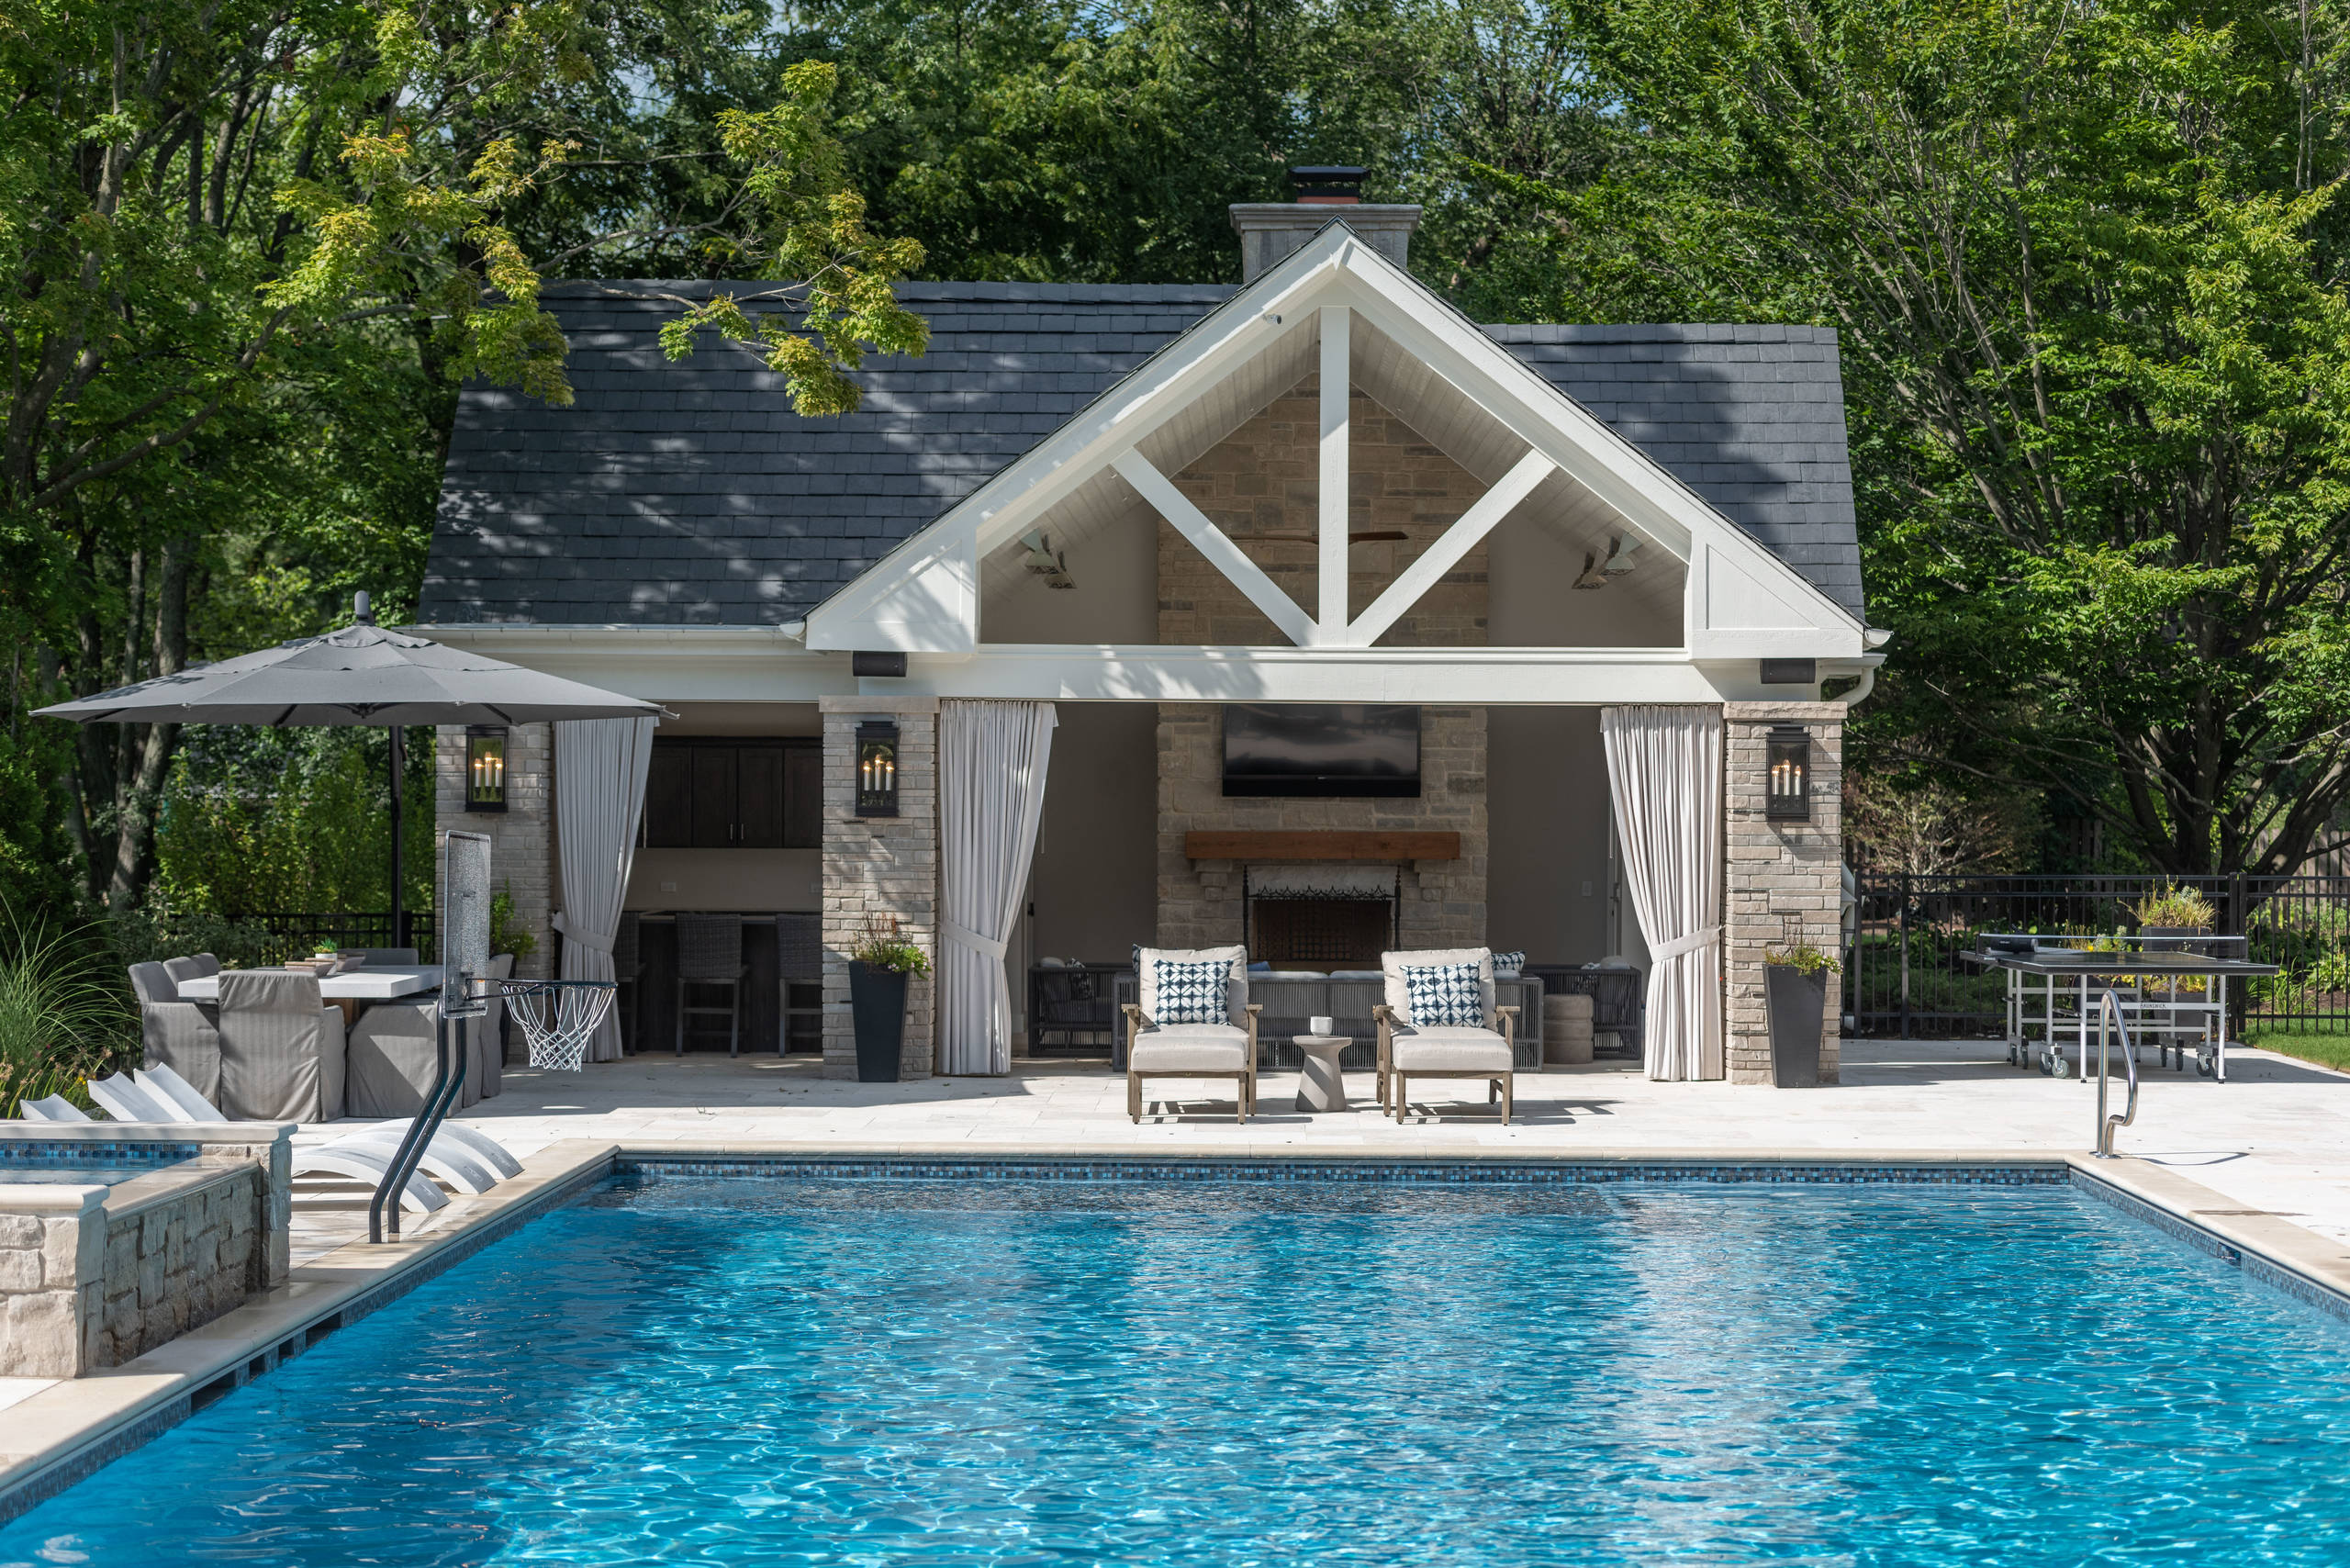 Pool House Pictures Ideas